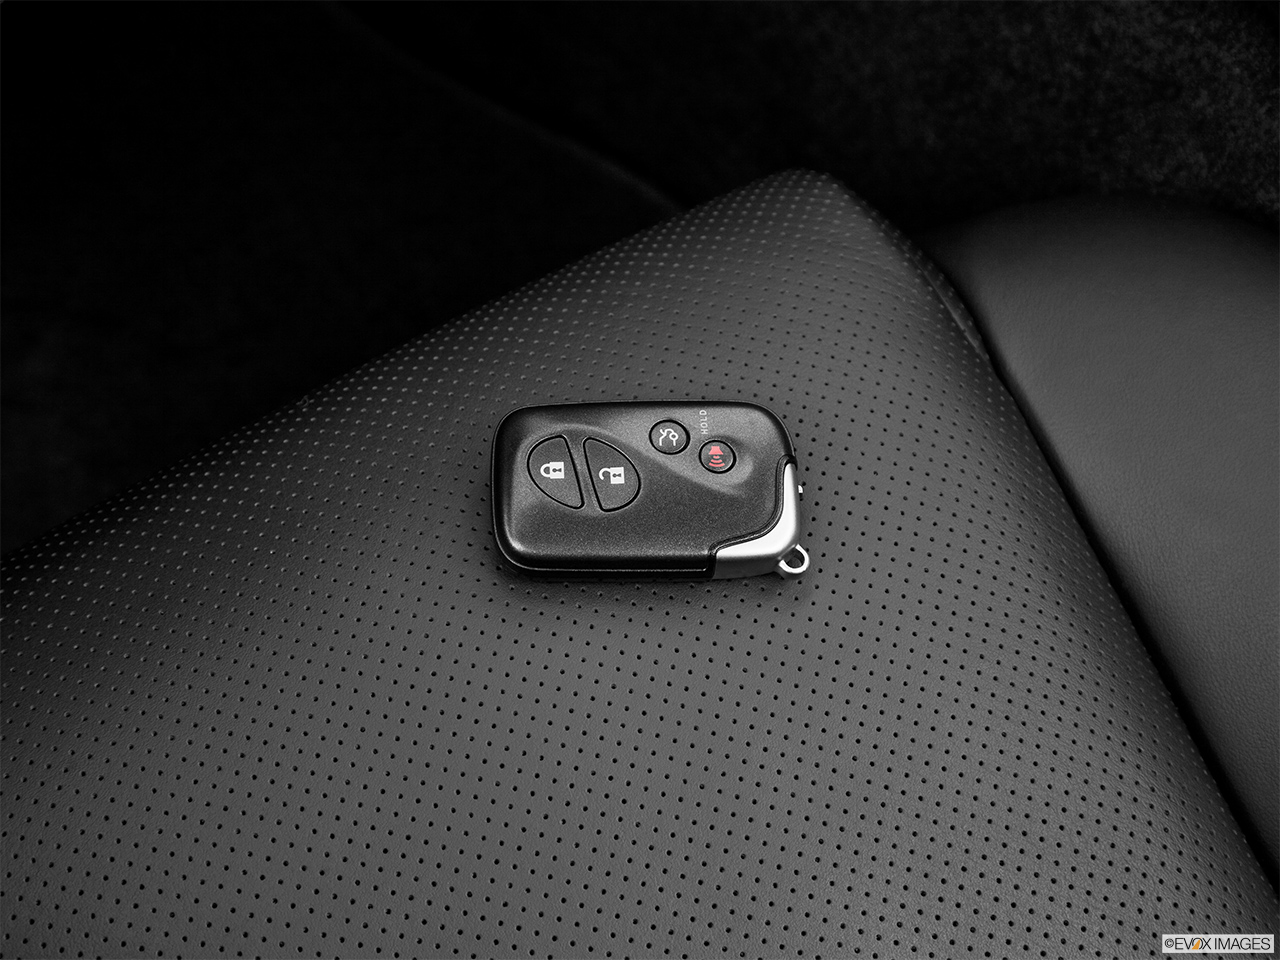 2013 Lexus IS 250C IS 250 C RWD Key fob on driver's seat.